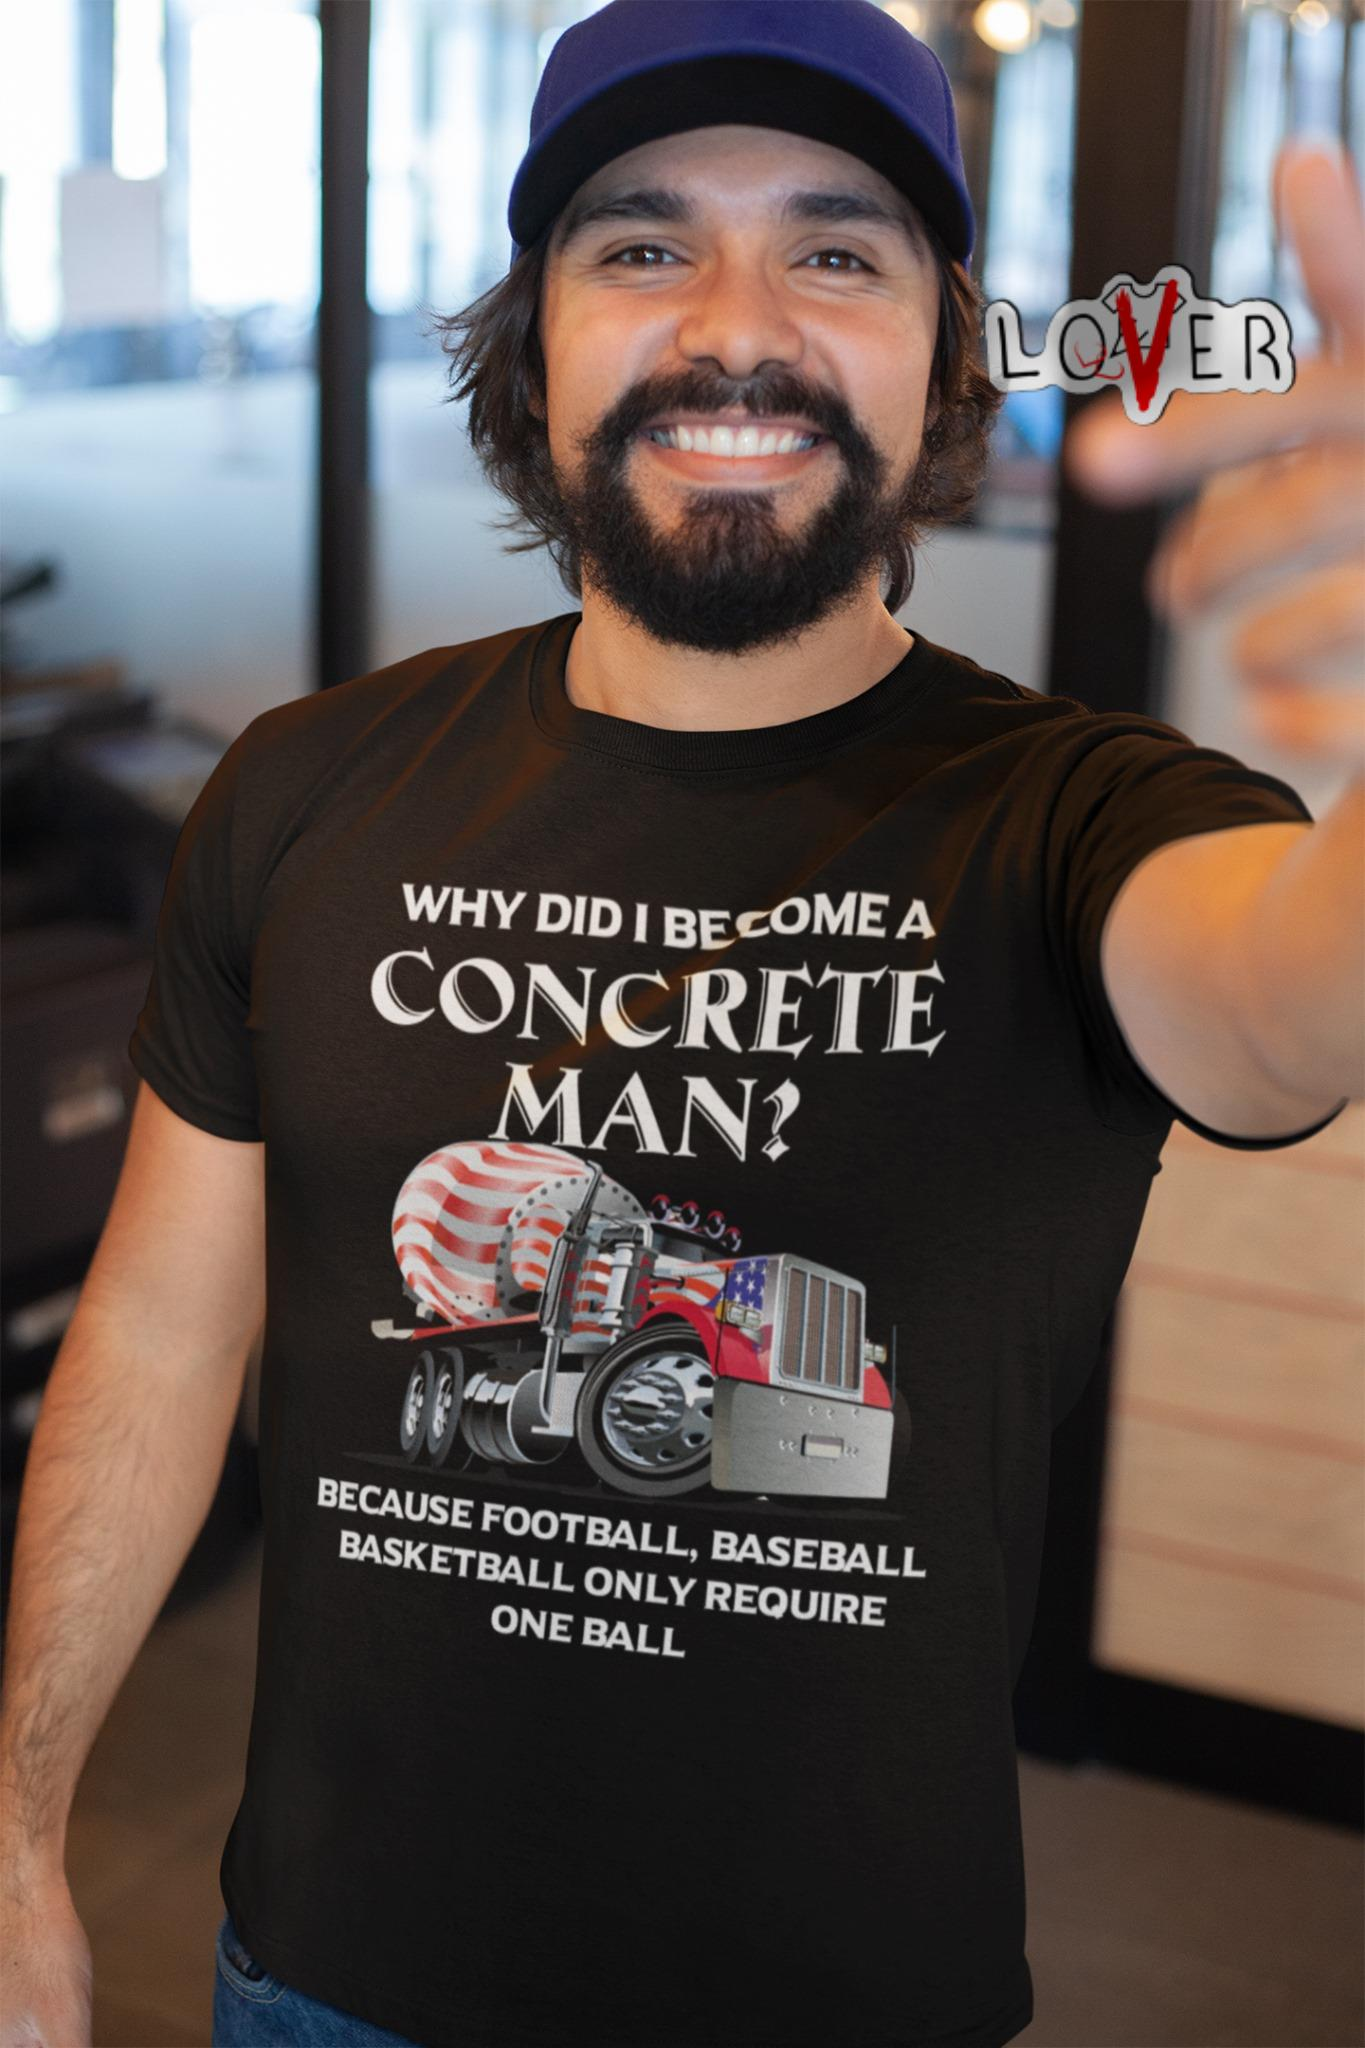 Why did I become a concrete man because football baseball shirt